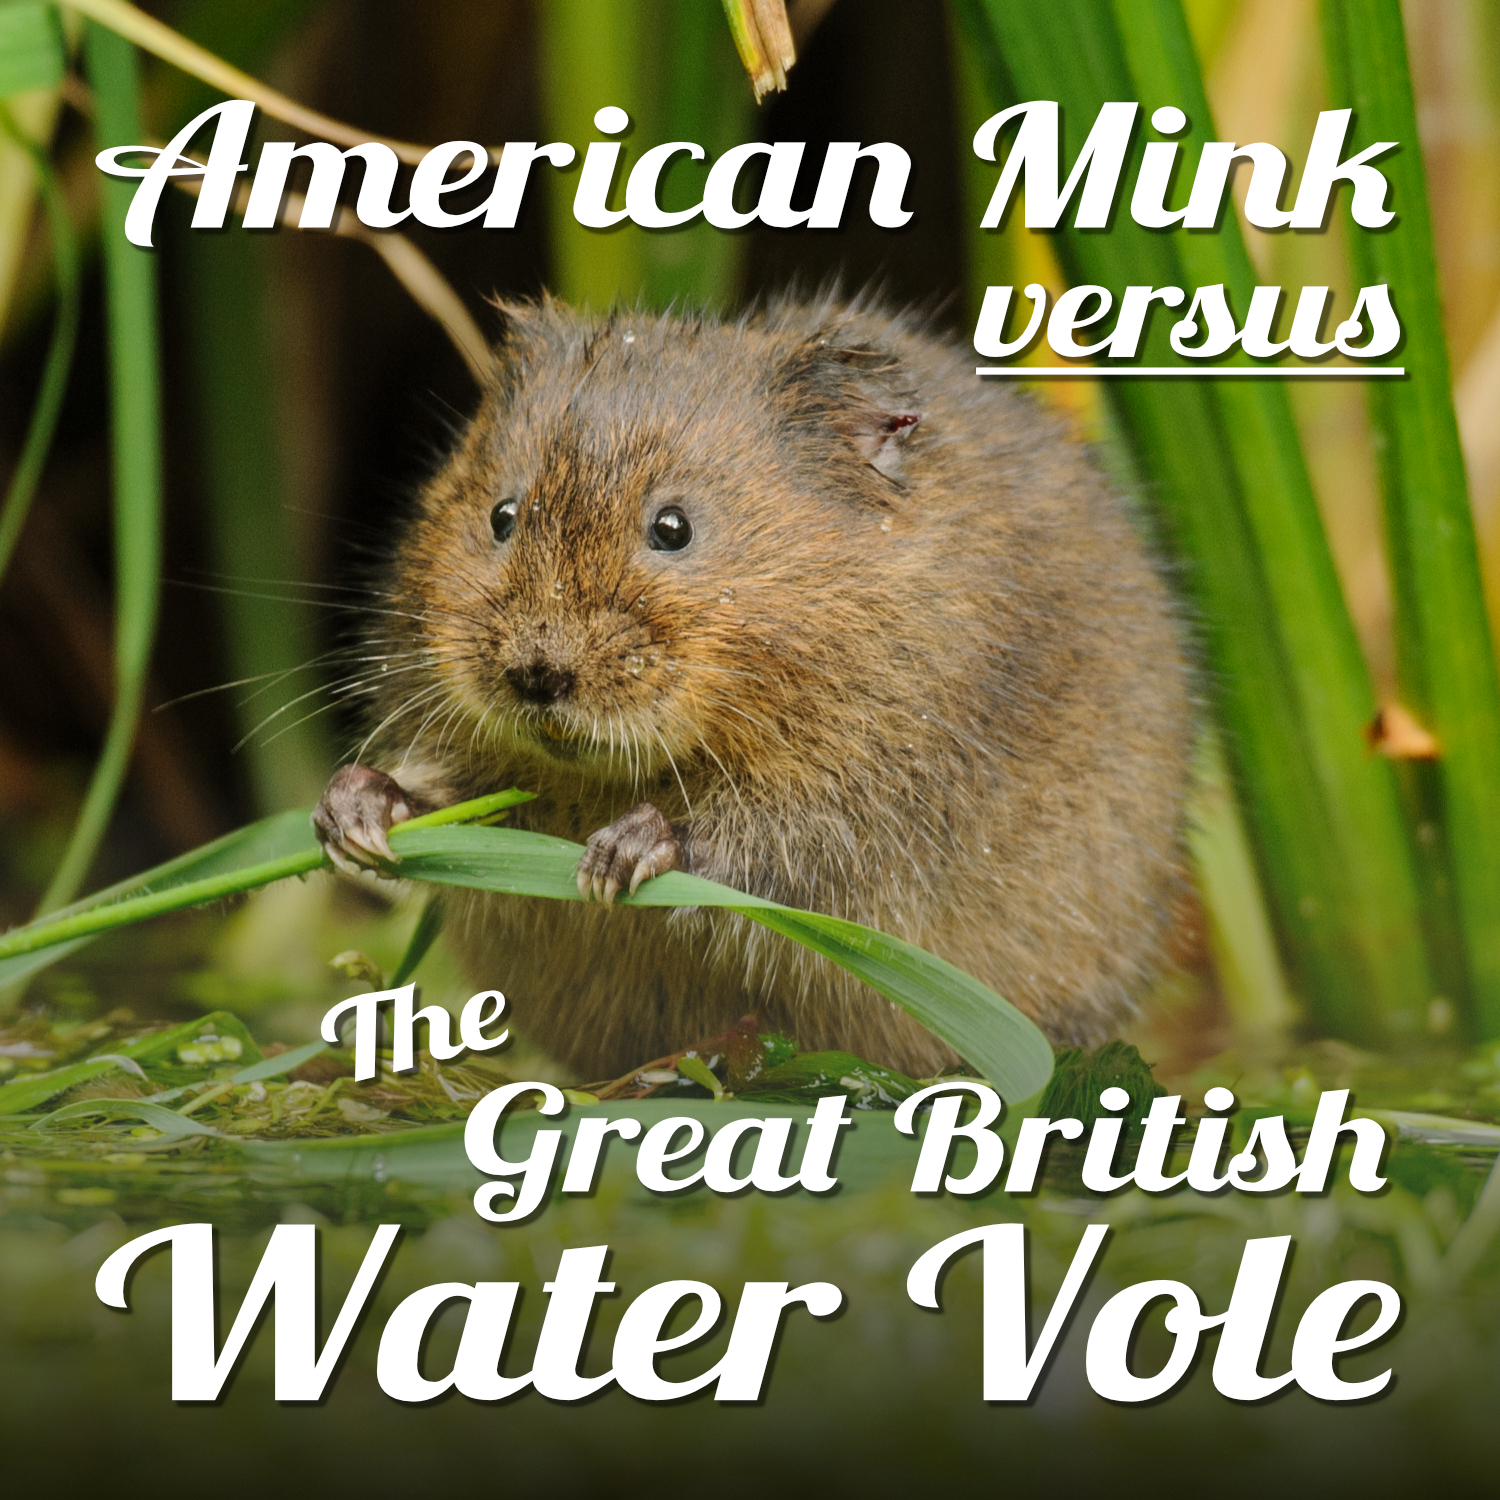 A plump brown water vole sits at the waters edge chewing on a leaf. The text reads 'American Mink versus the Great British water vole'.